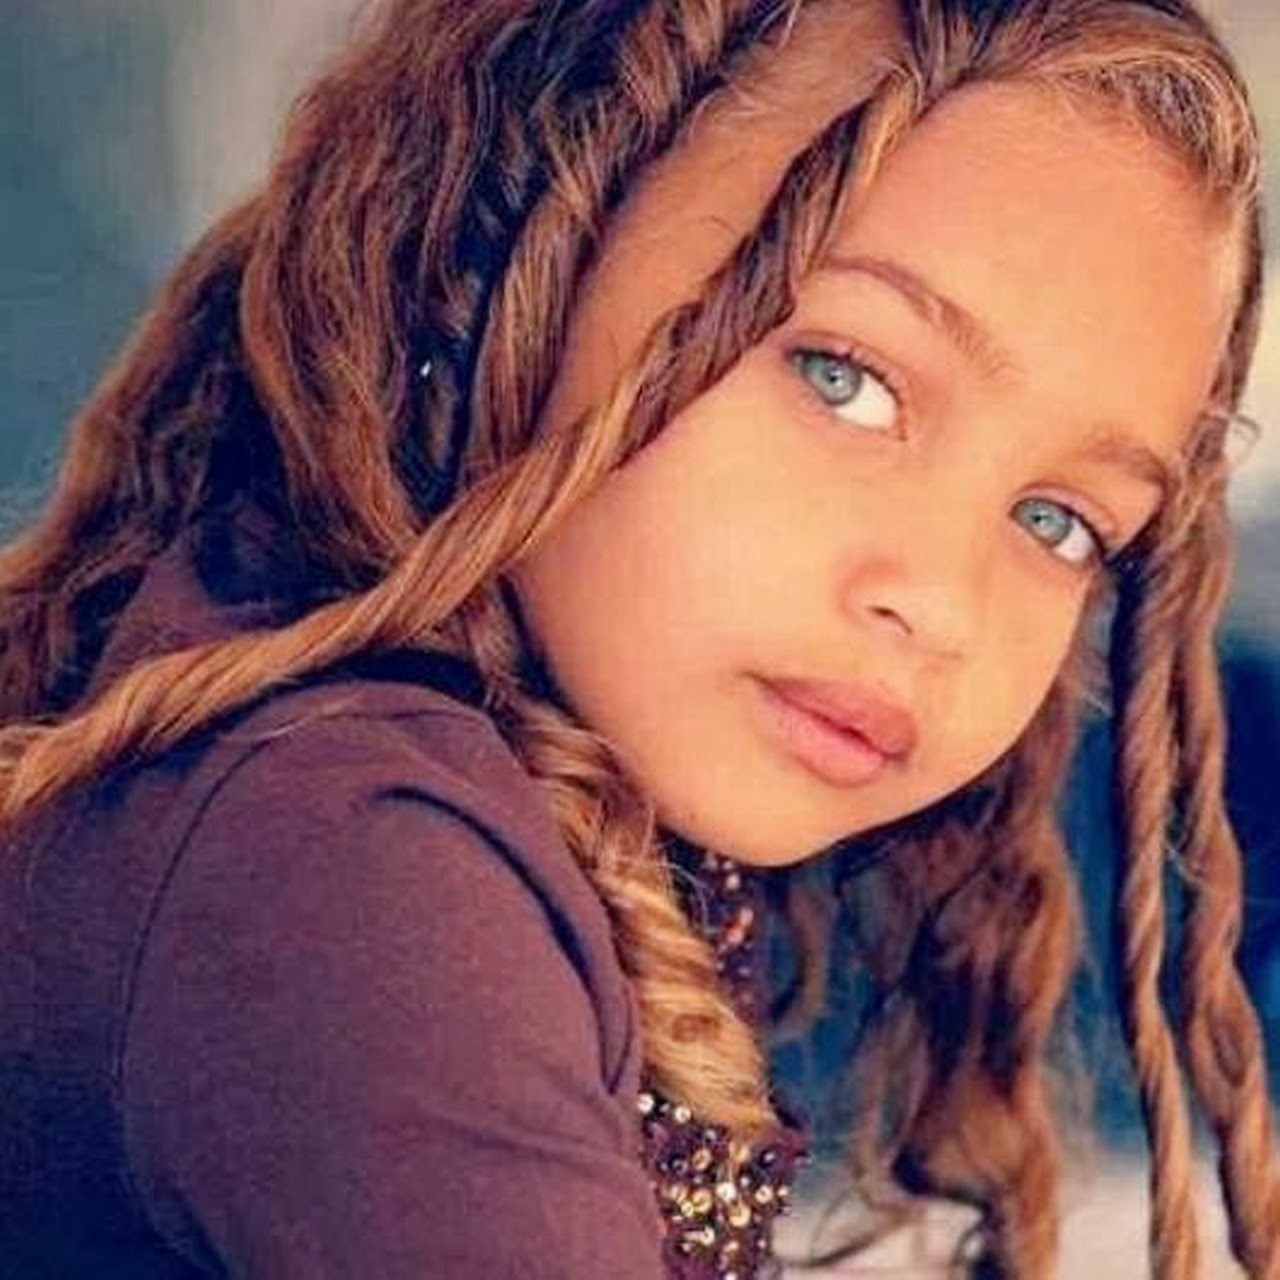 Buy Baby Mixed girl with green eyes pictures picture trends